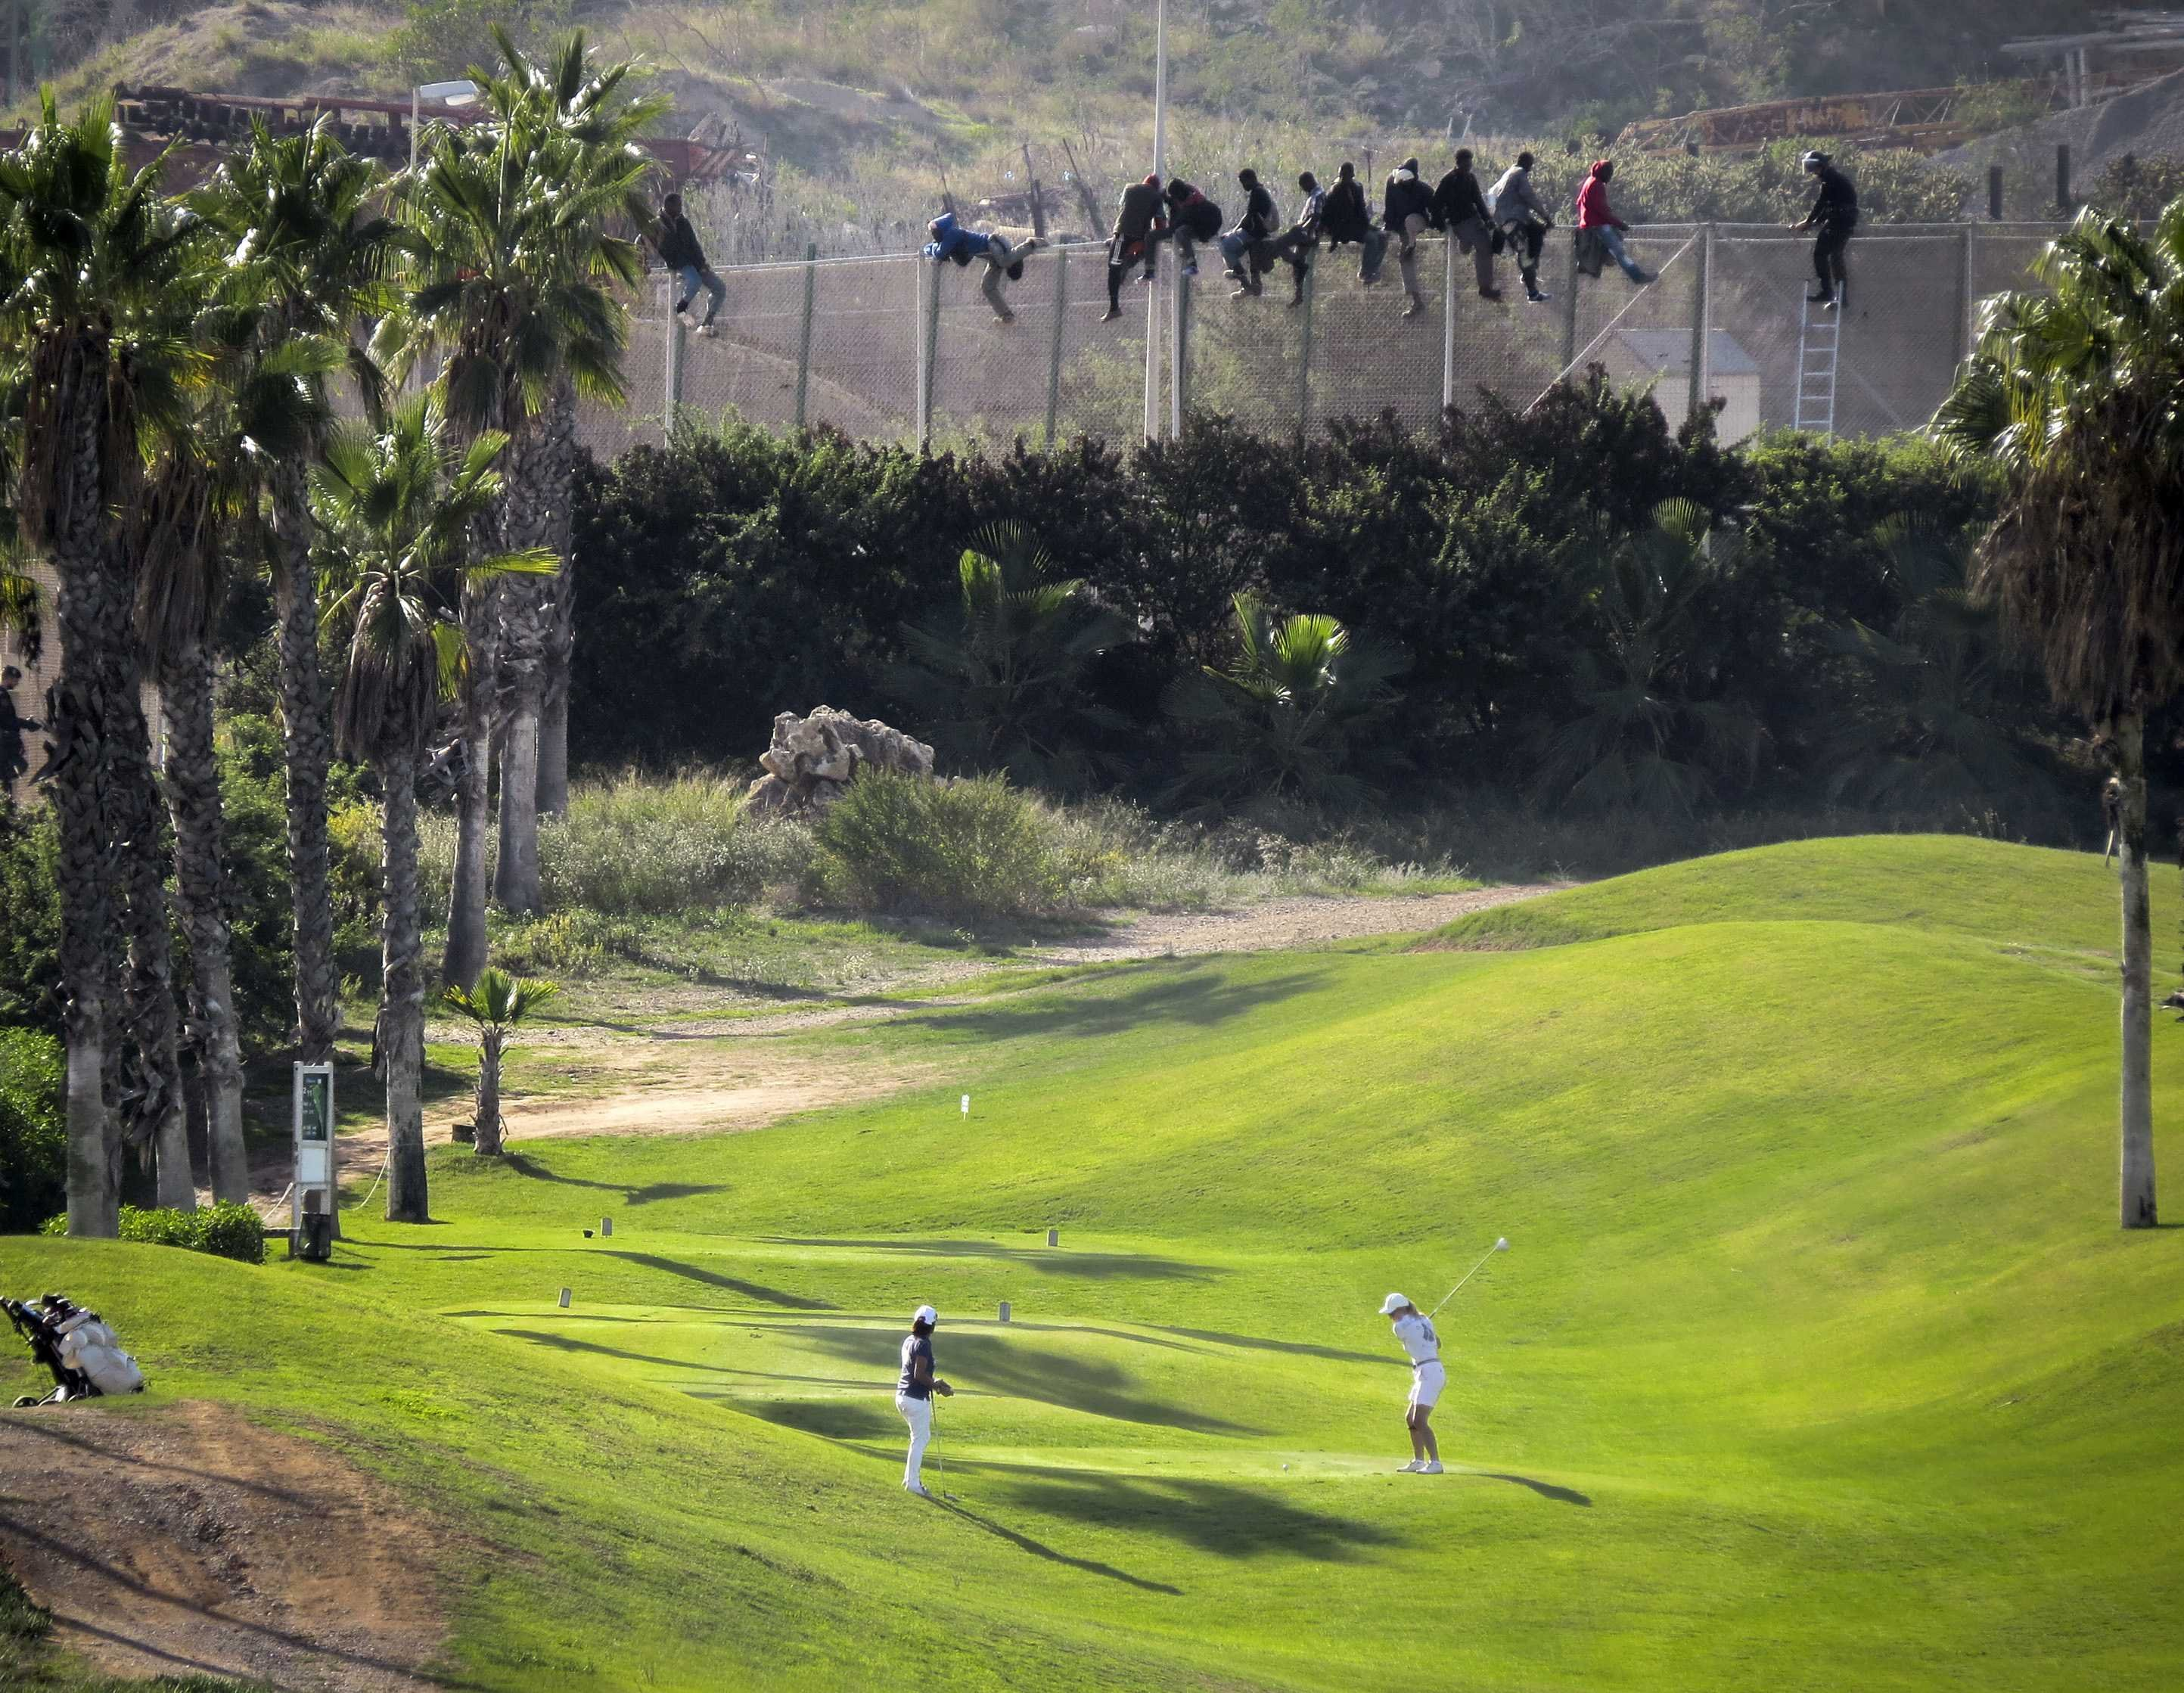 A golfer swings as African migrants sit atop a fence during an attempt to cross from Morocco into the Spanish enclave of Melilla on Oct. 22, 2014.